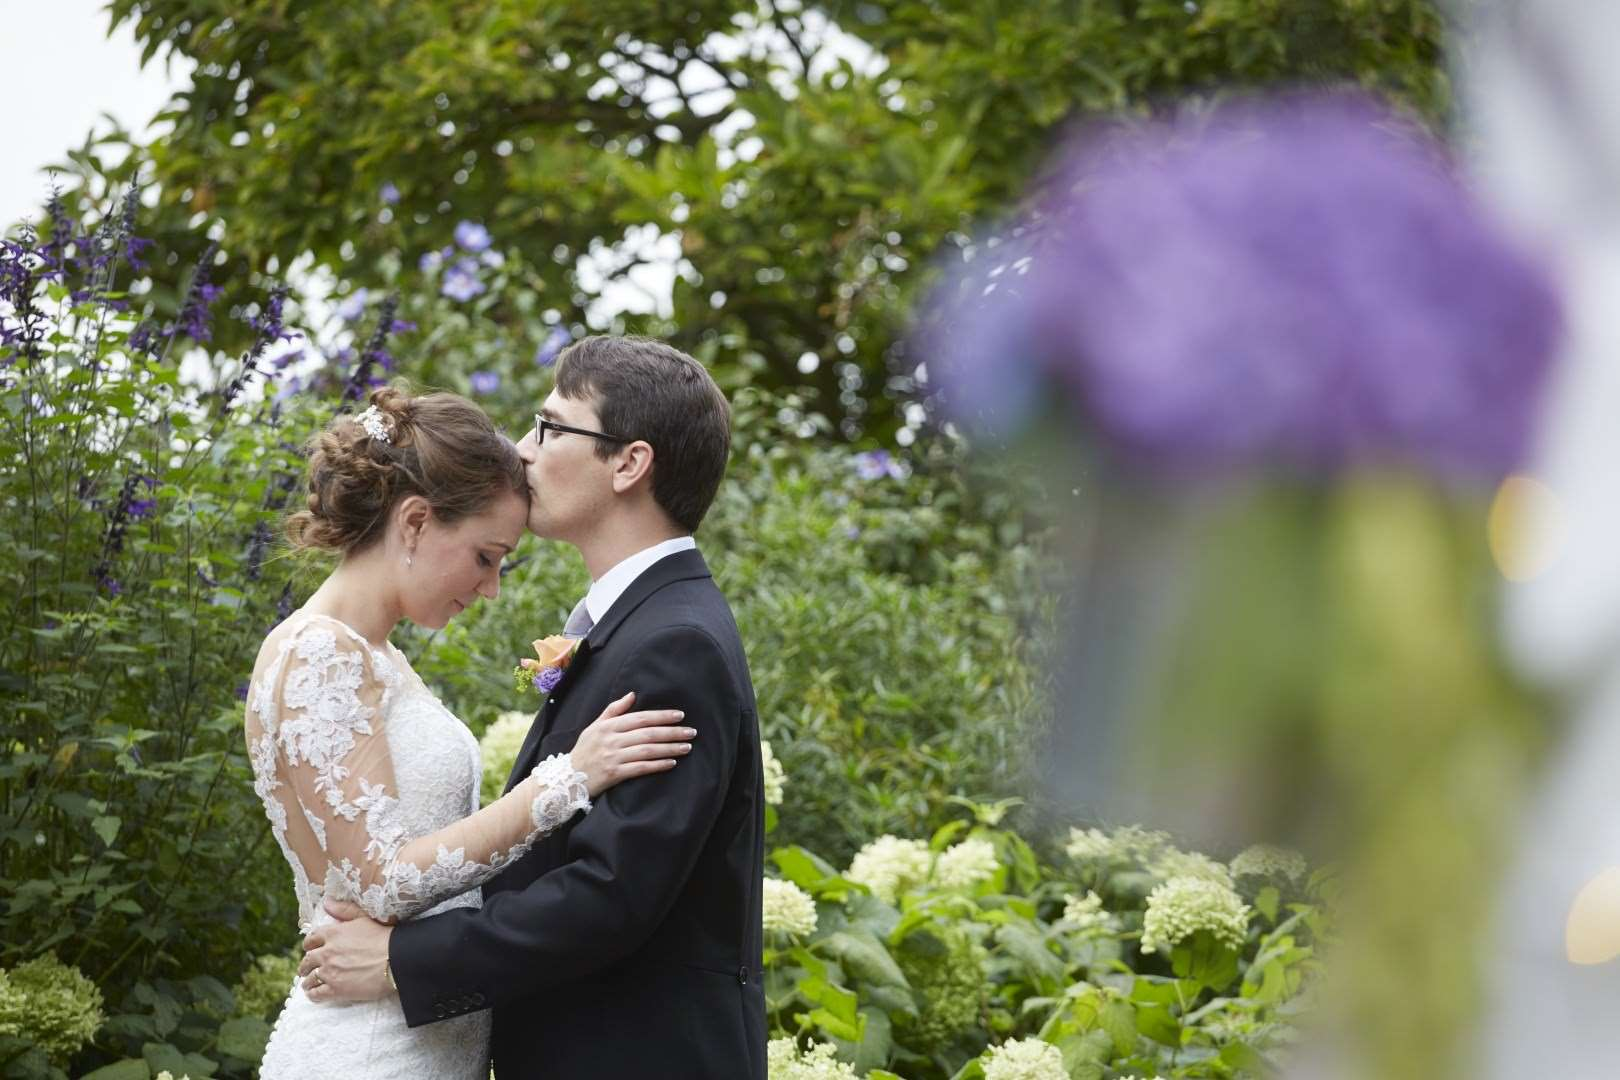 Huge thank you for all your help on our amazing wedding day